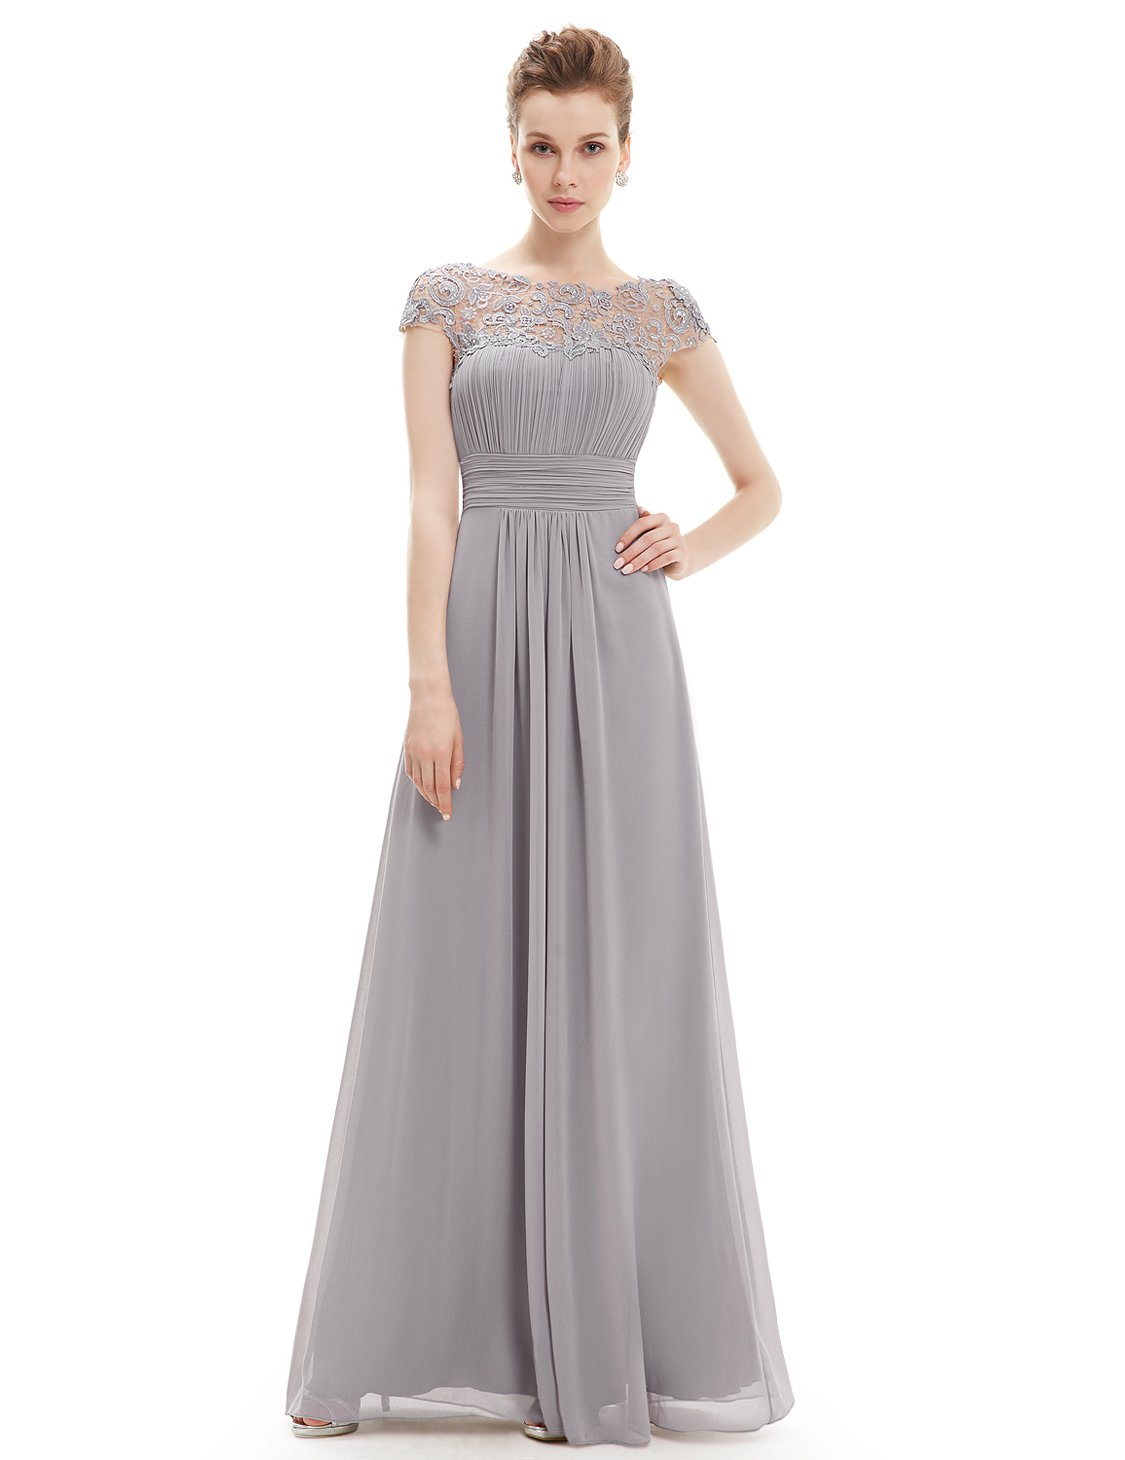 72ef21573 Ever-Pretty Womens Cap Sleeve Lace Neckline Ruched Bust Evening Gown 10 US  Grey